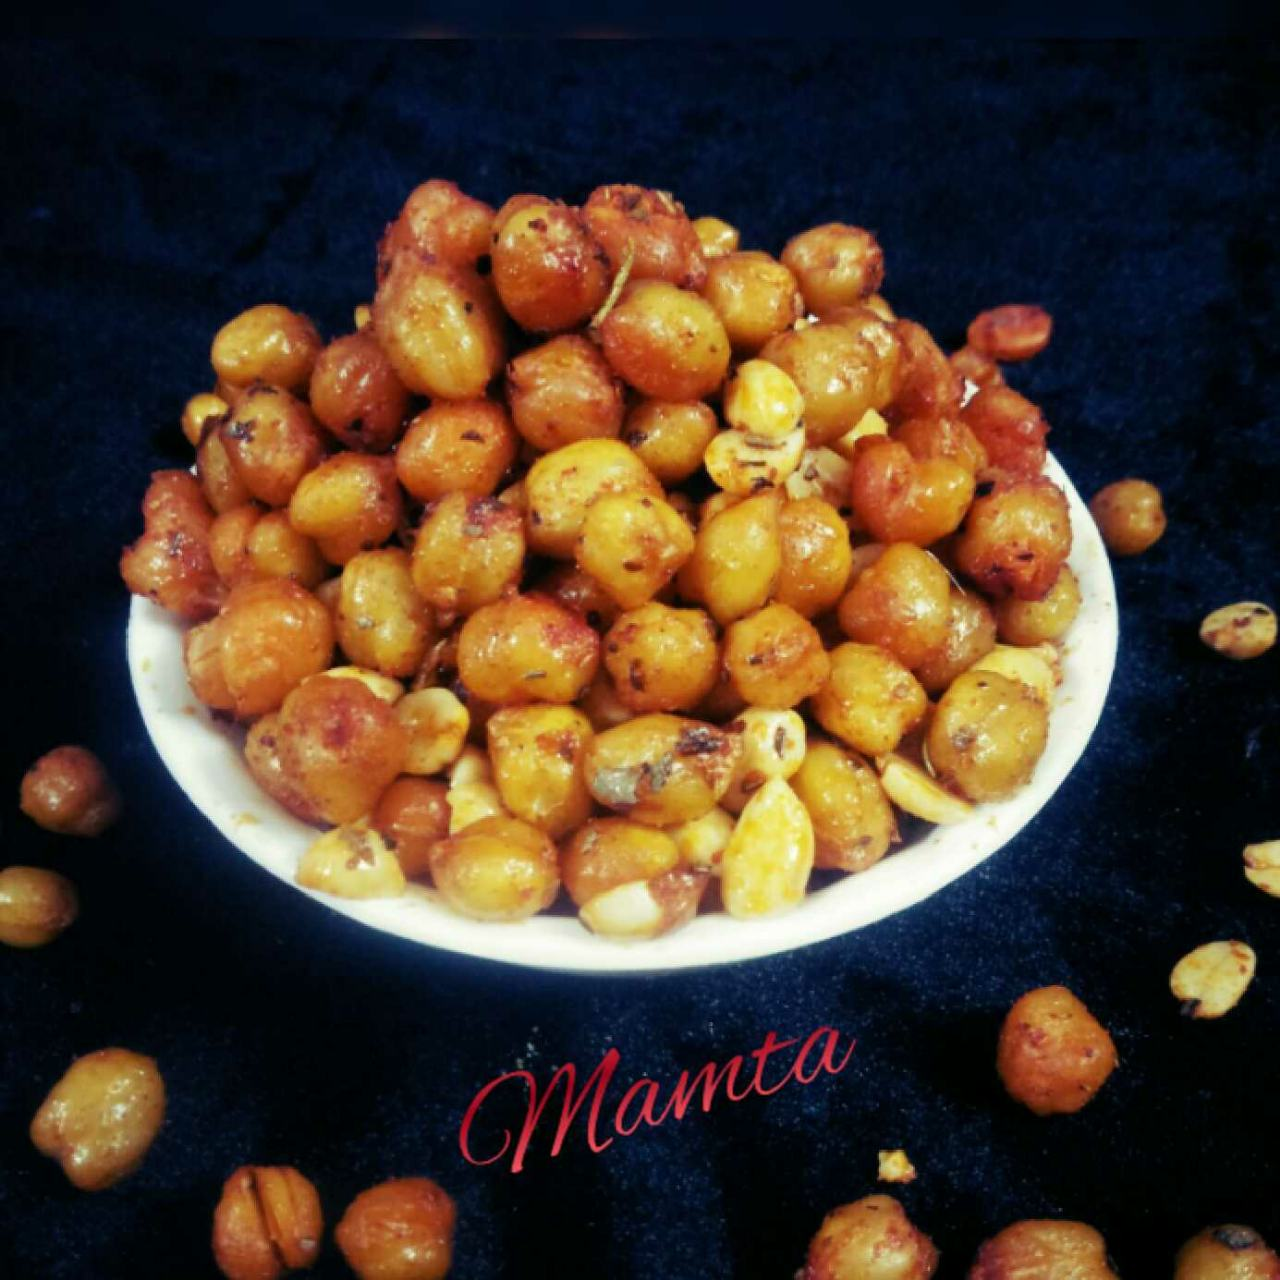 Roasted Chana in microwave.